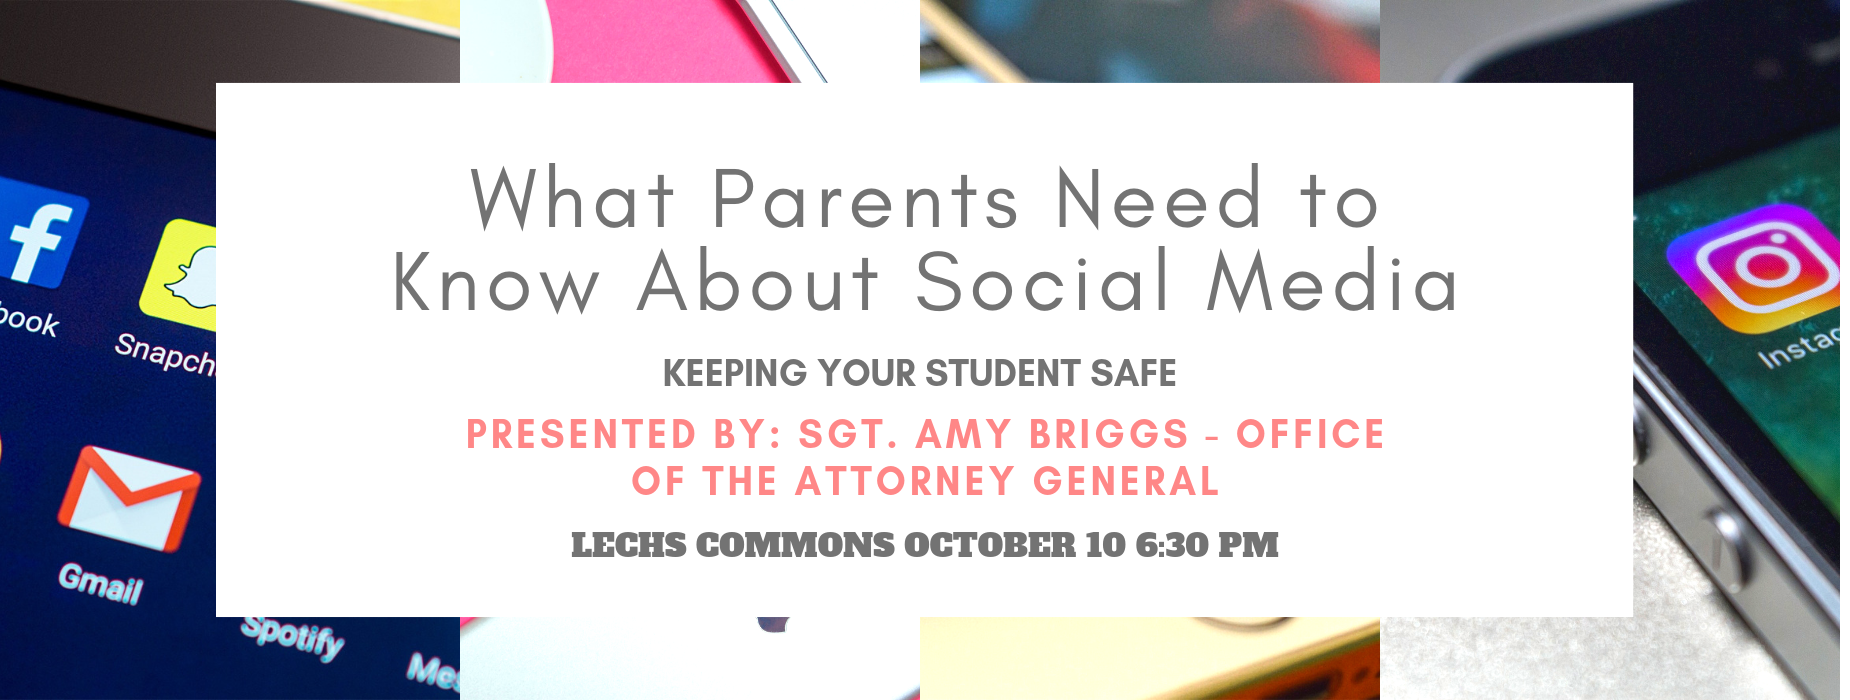 Sgt. Amy Briggs will be on campus october 11 at 6:30pm to speak about the importance of monitoring your child's social media and keeping them safe.